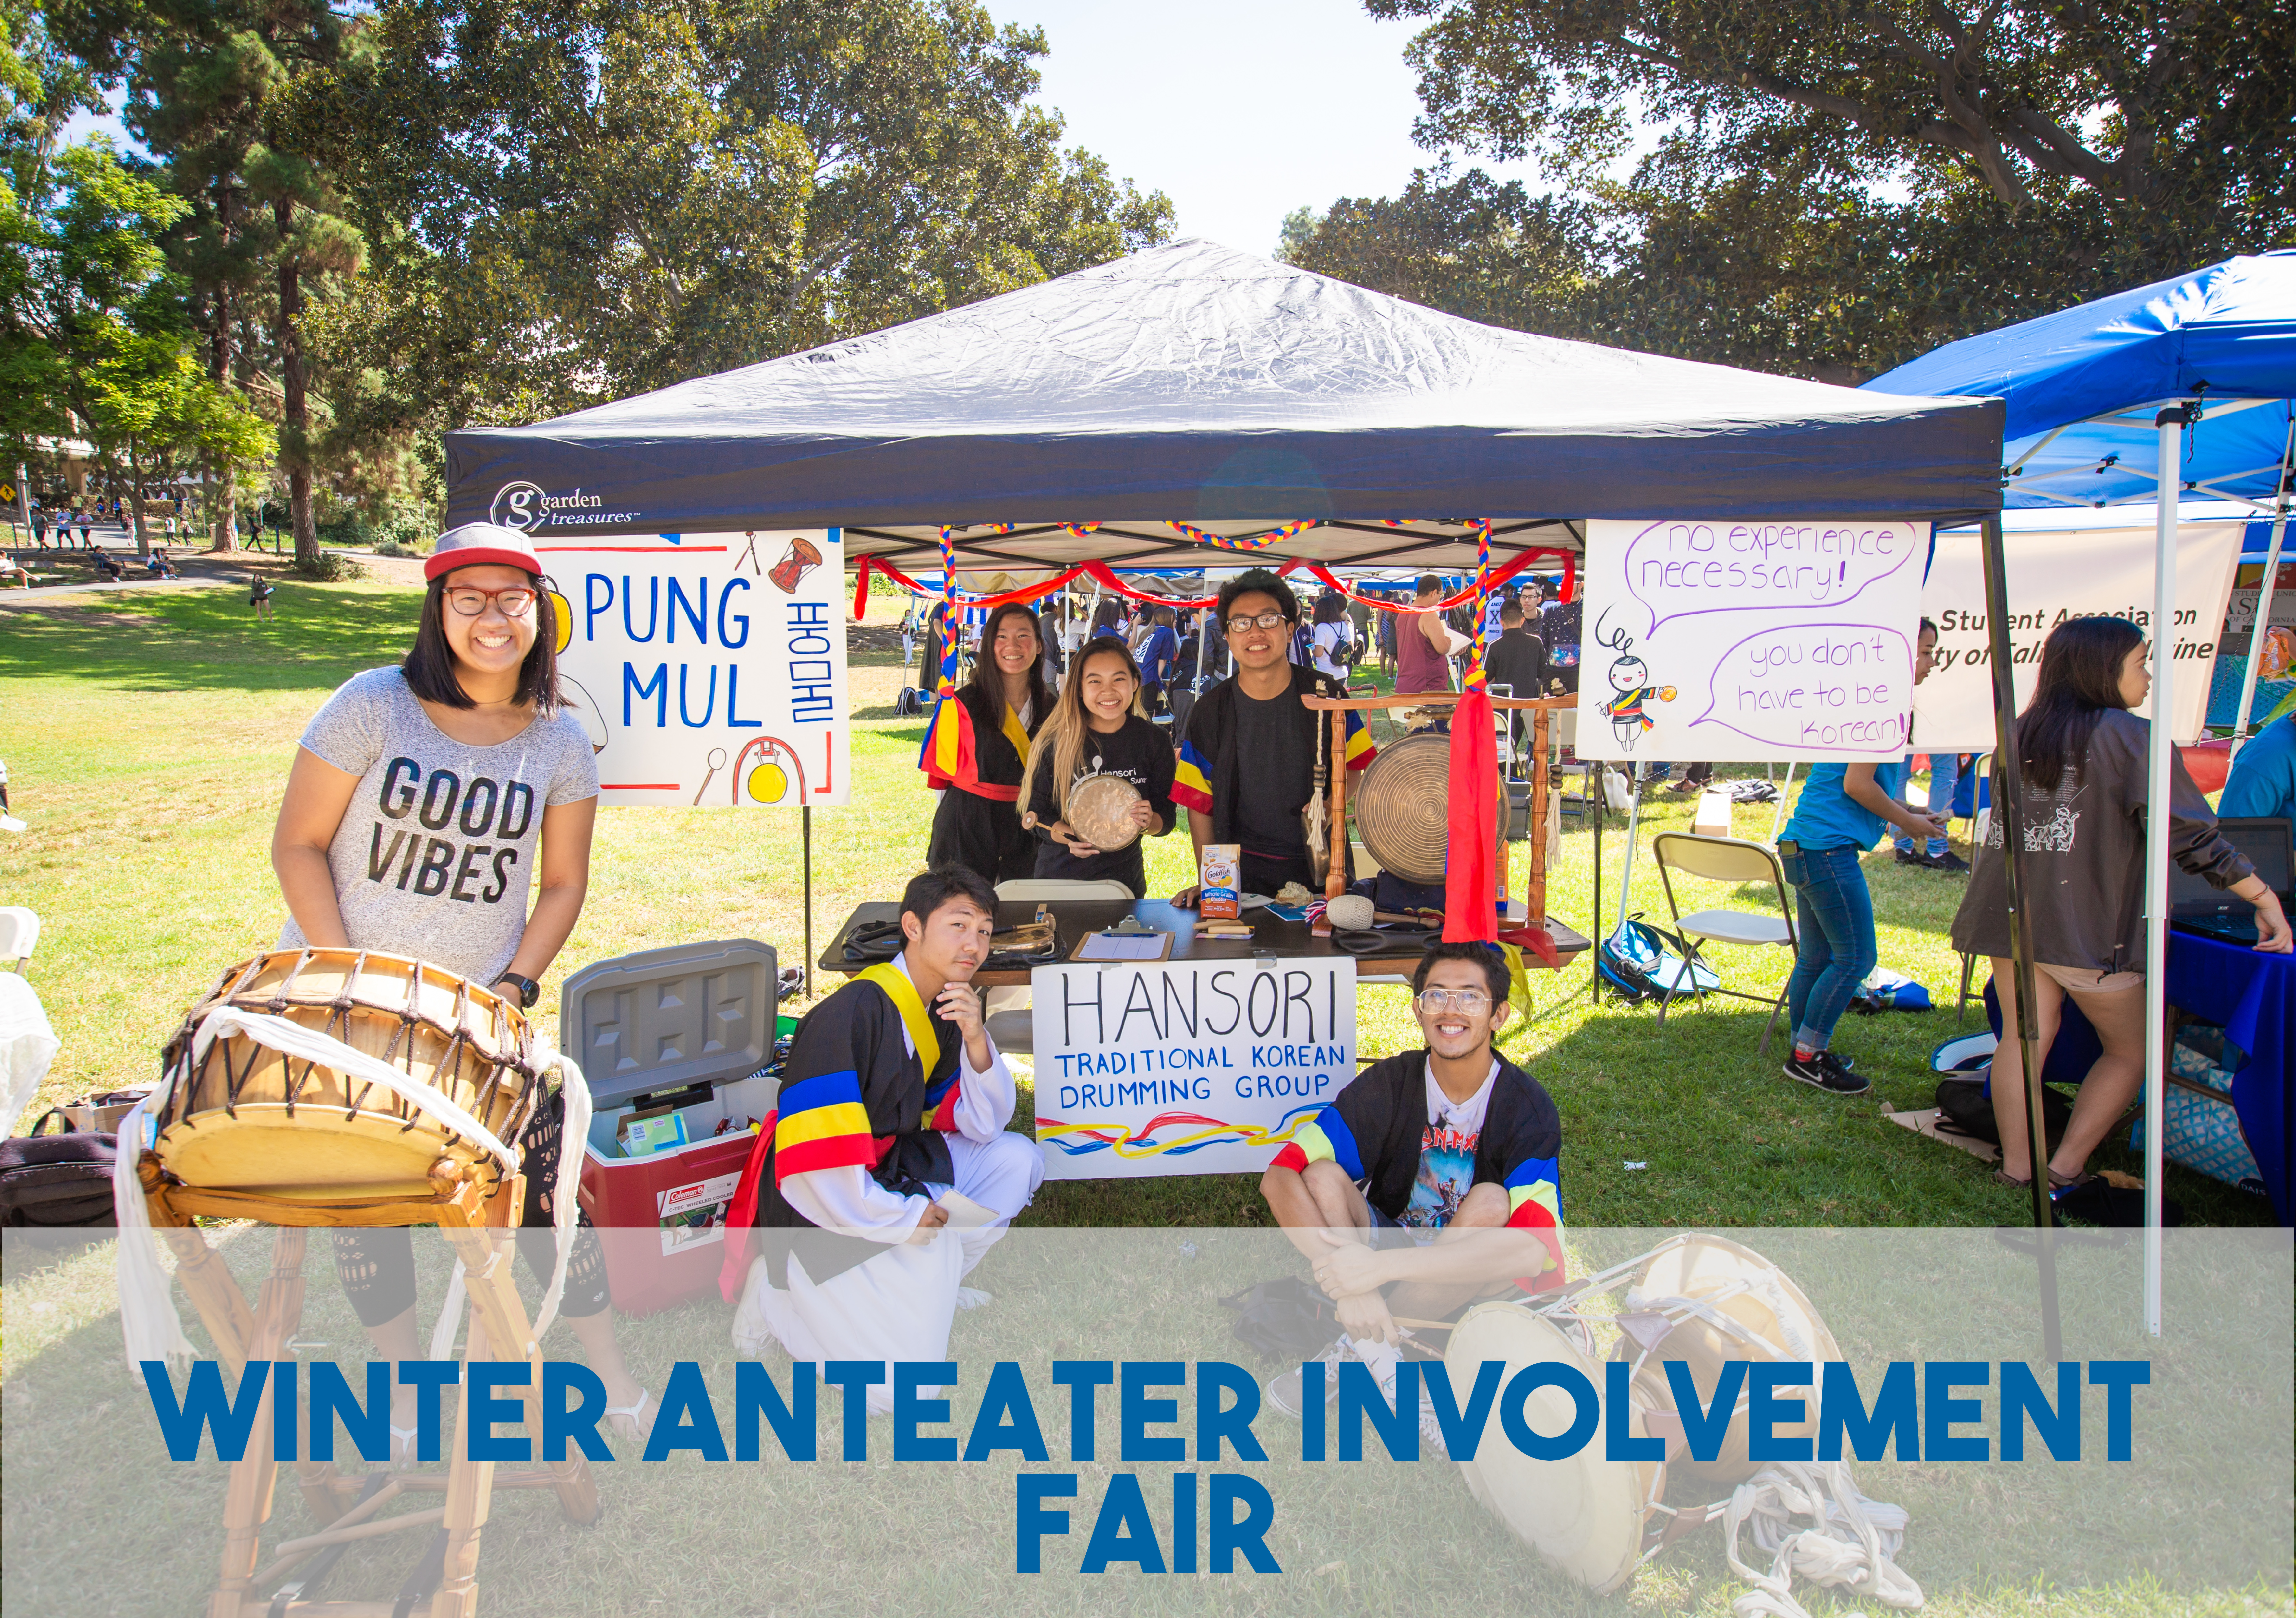 Winter Anteater Involvement Fair